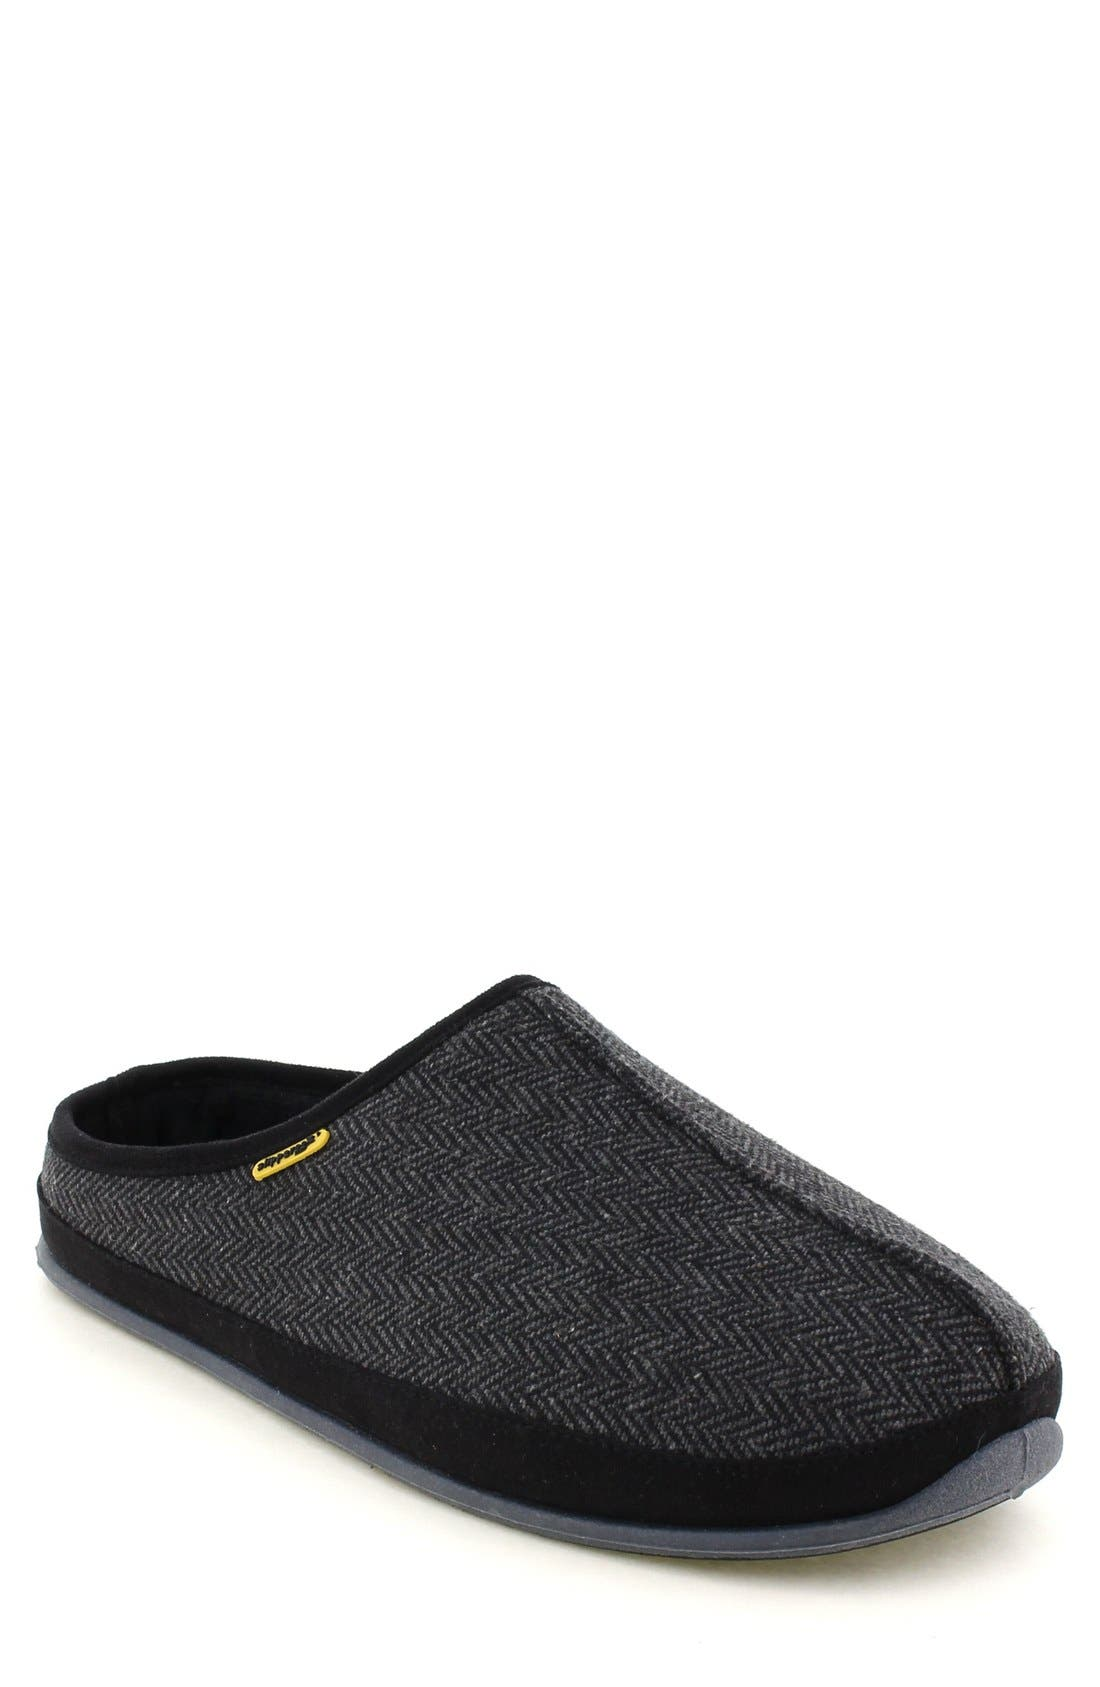 Deer Stags 'Wherever' Slipper (Men)